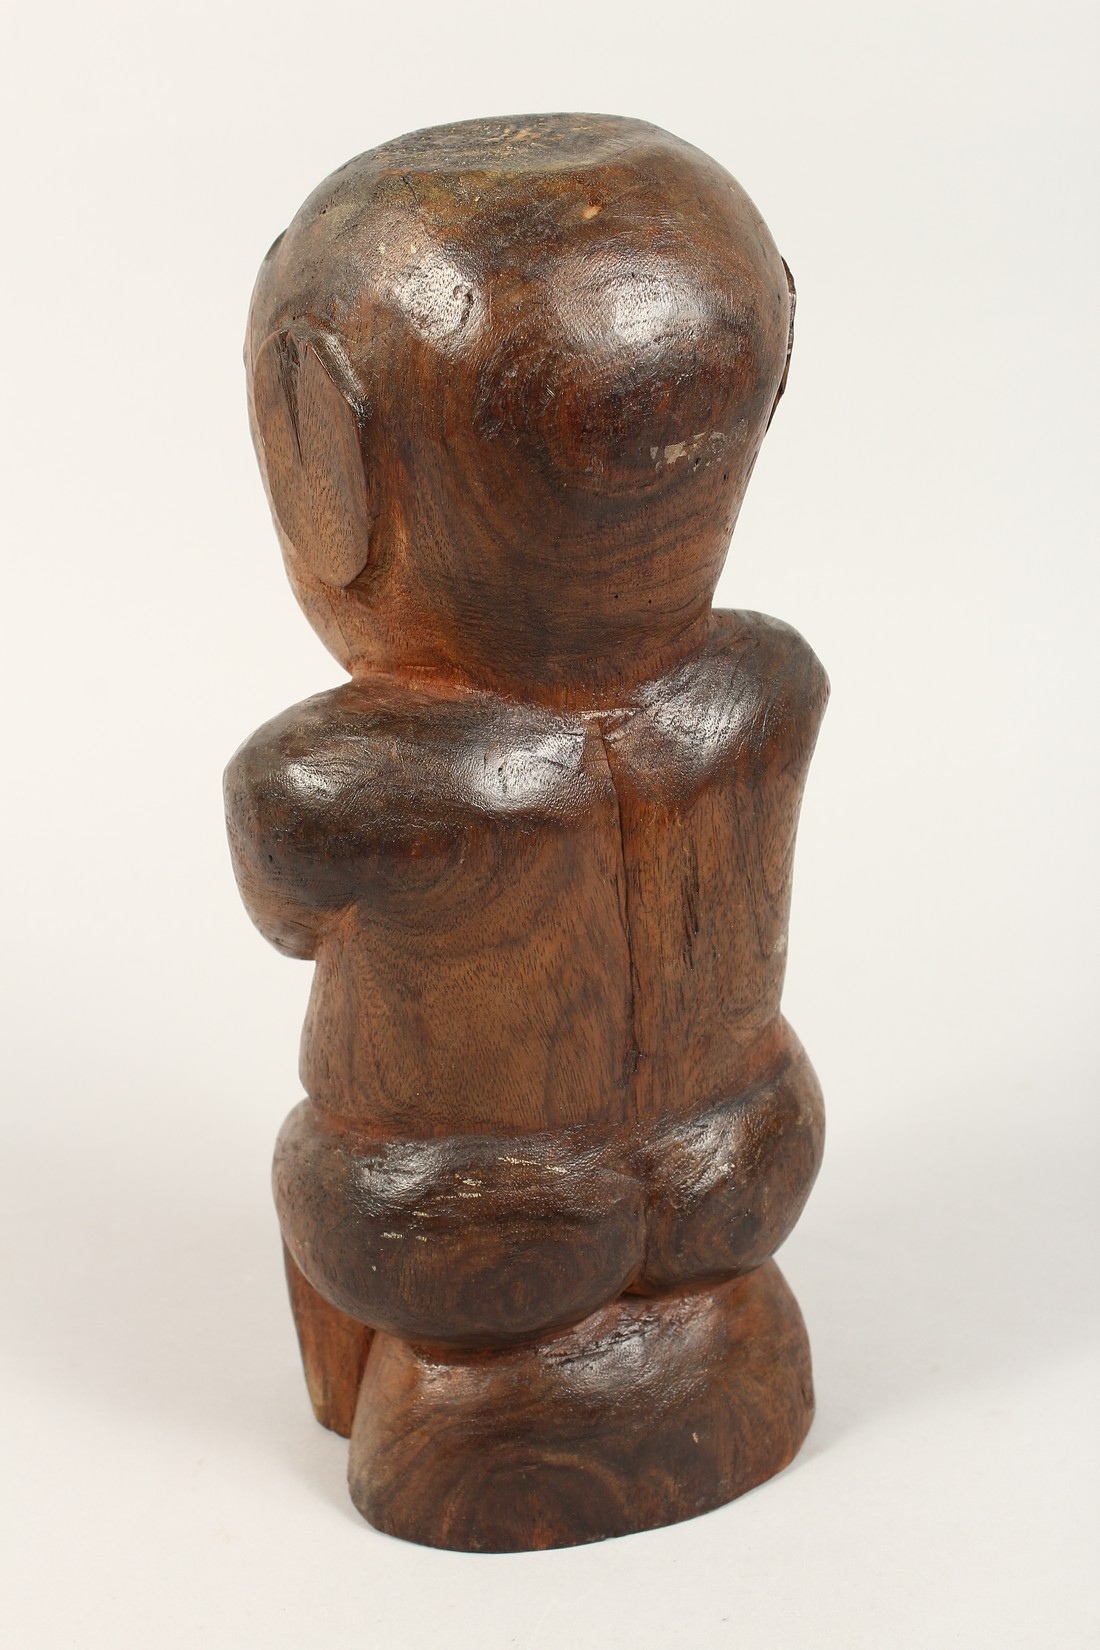 A CARVED WOOD POLYNESIAN FIGURE 18ins high - Image 2 of 4